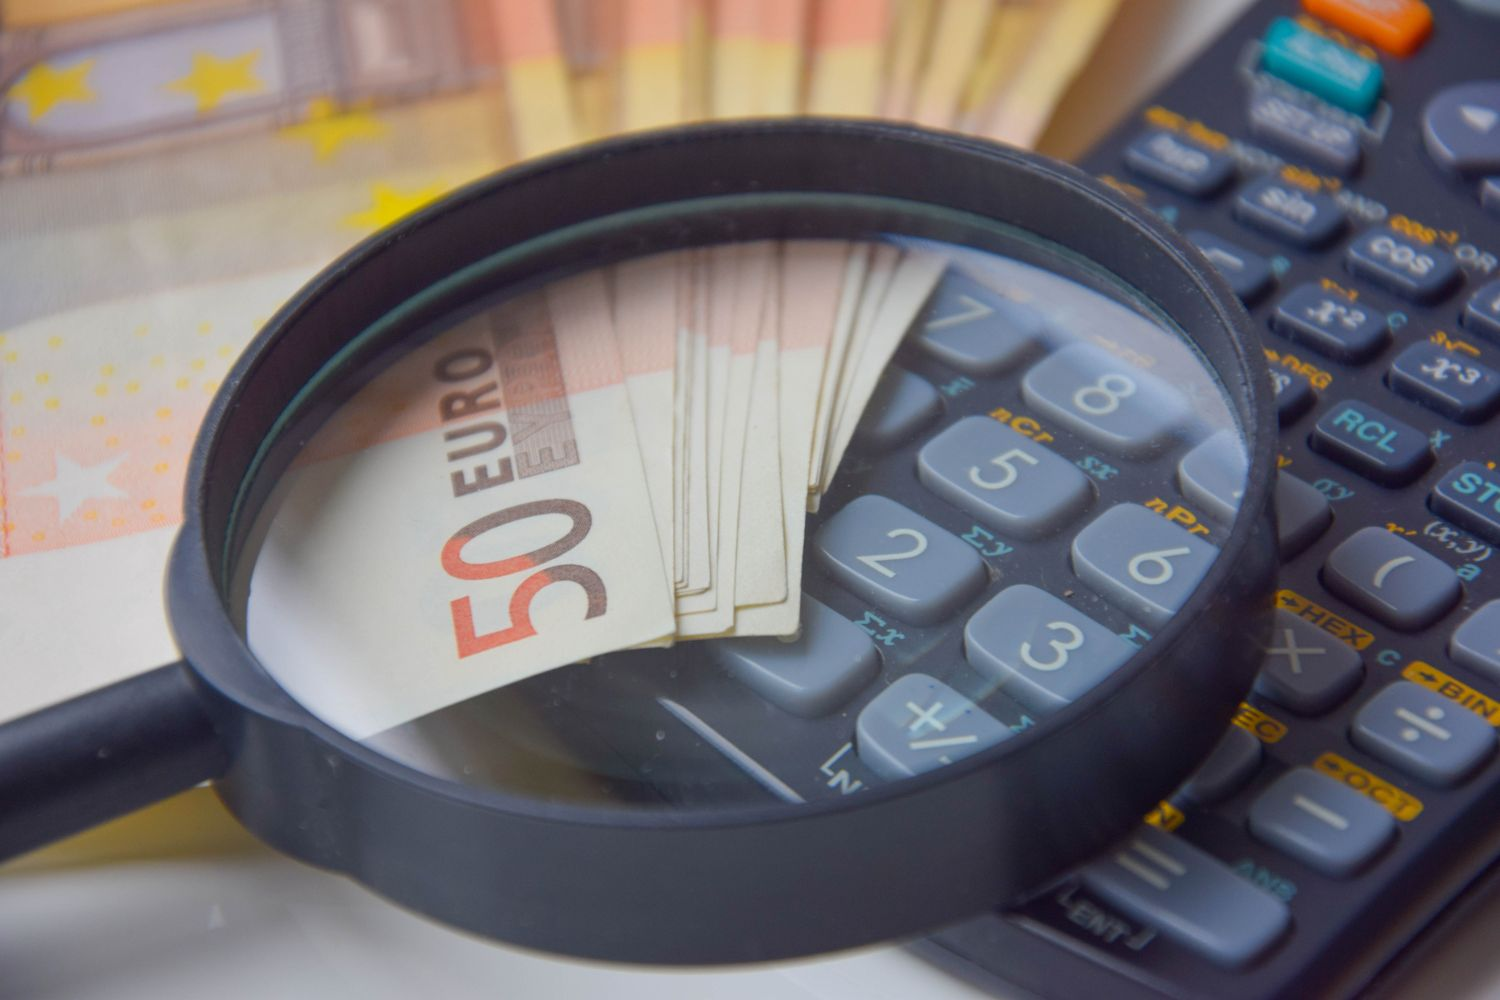 Money bills, calculator, and a magnifying glass to indicate personal finance management